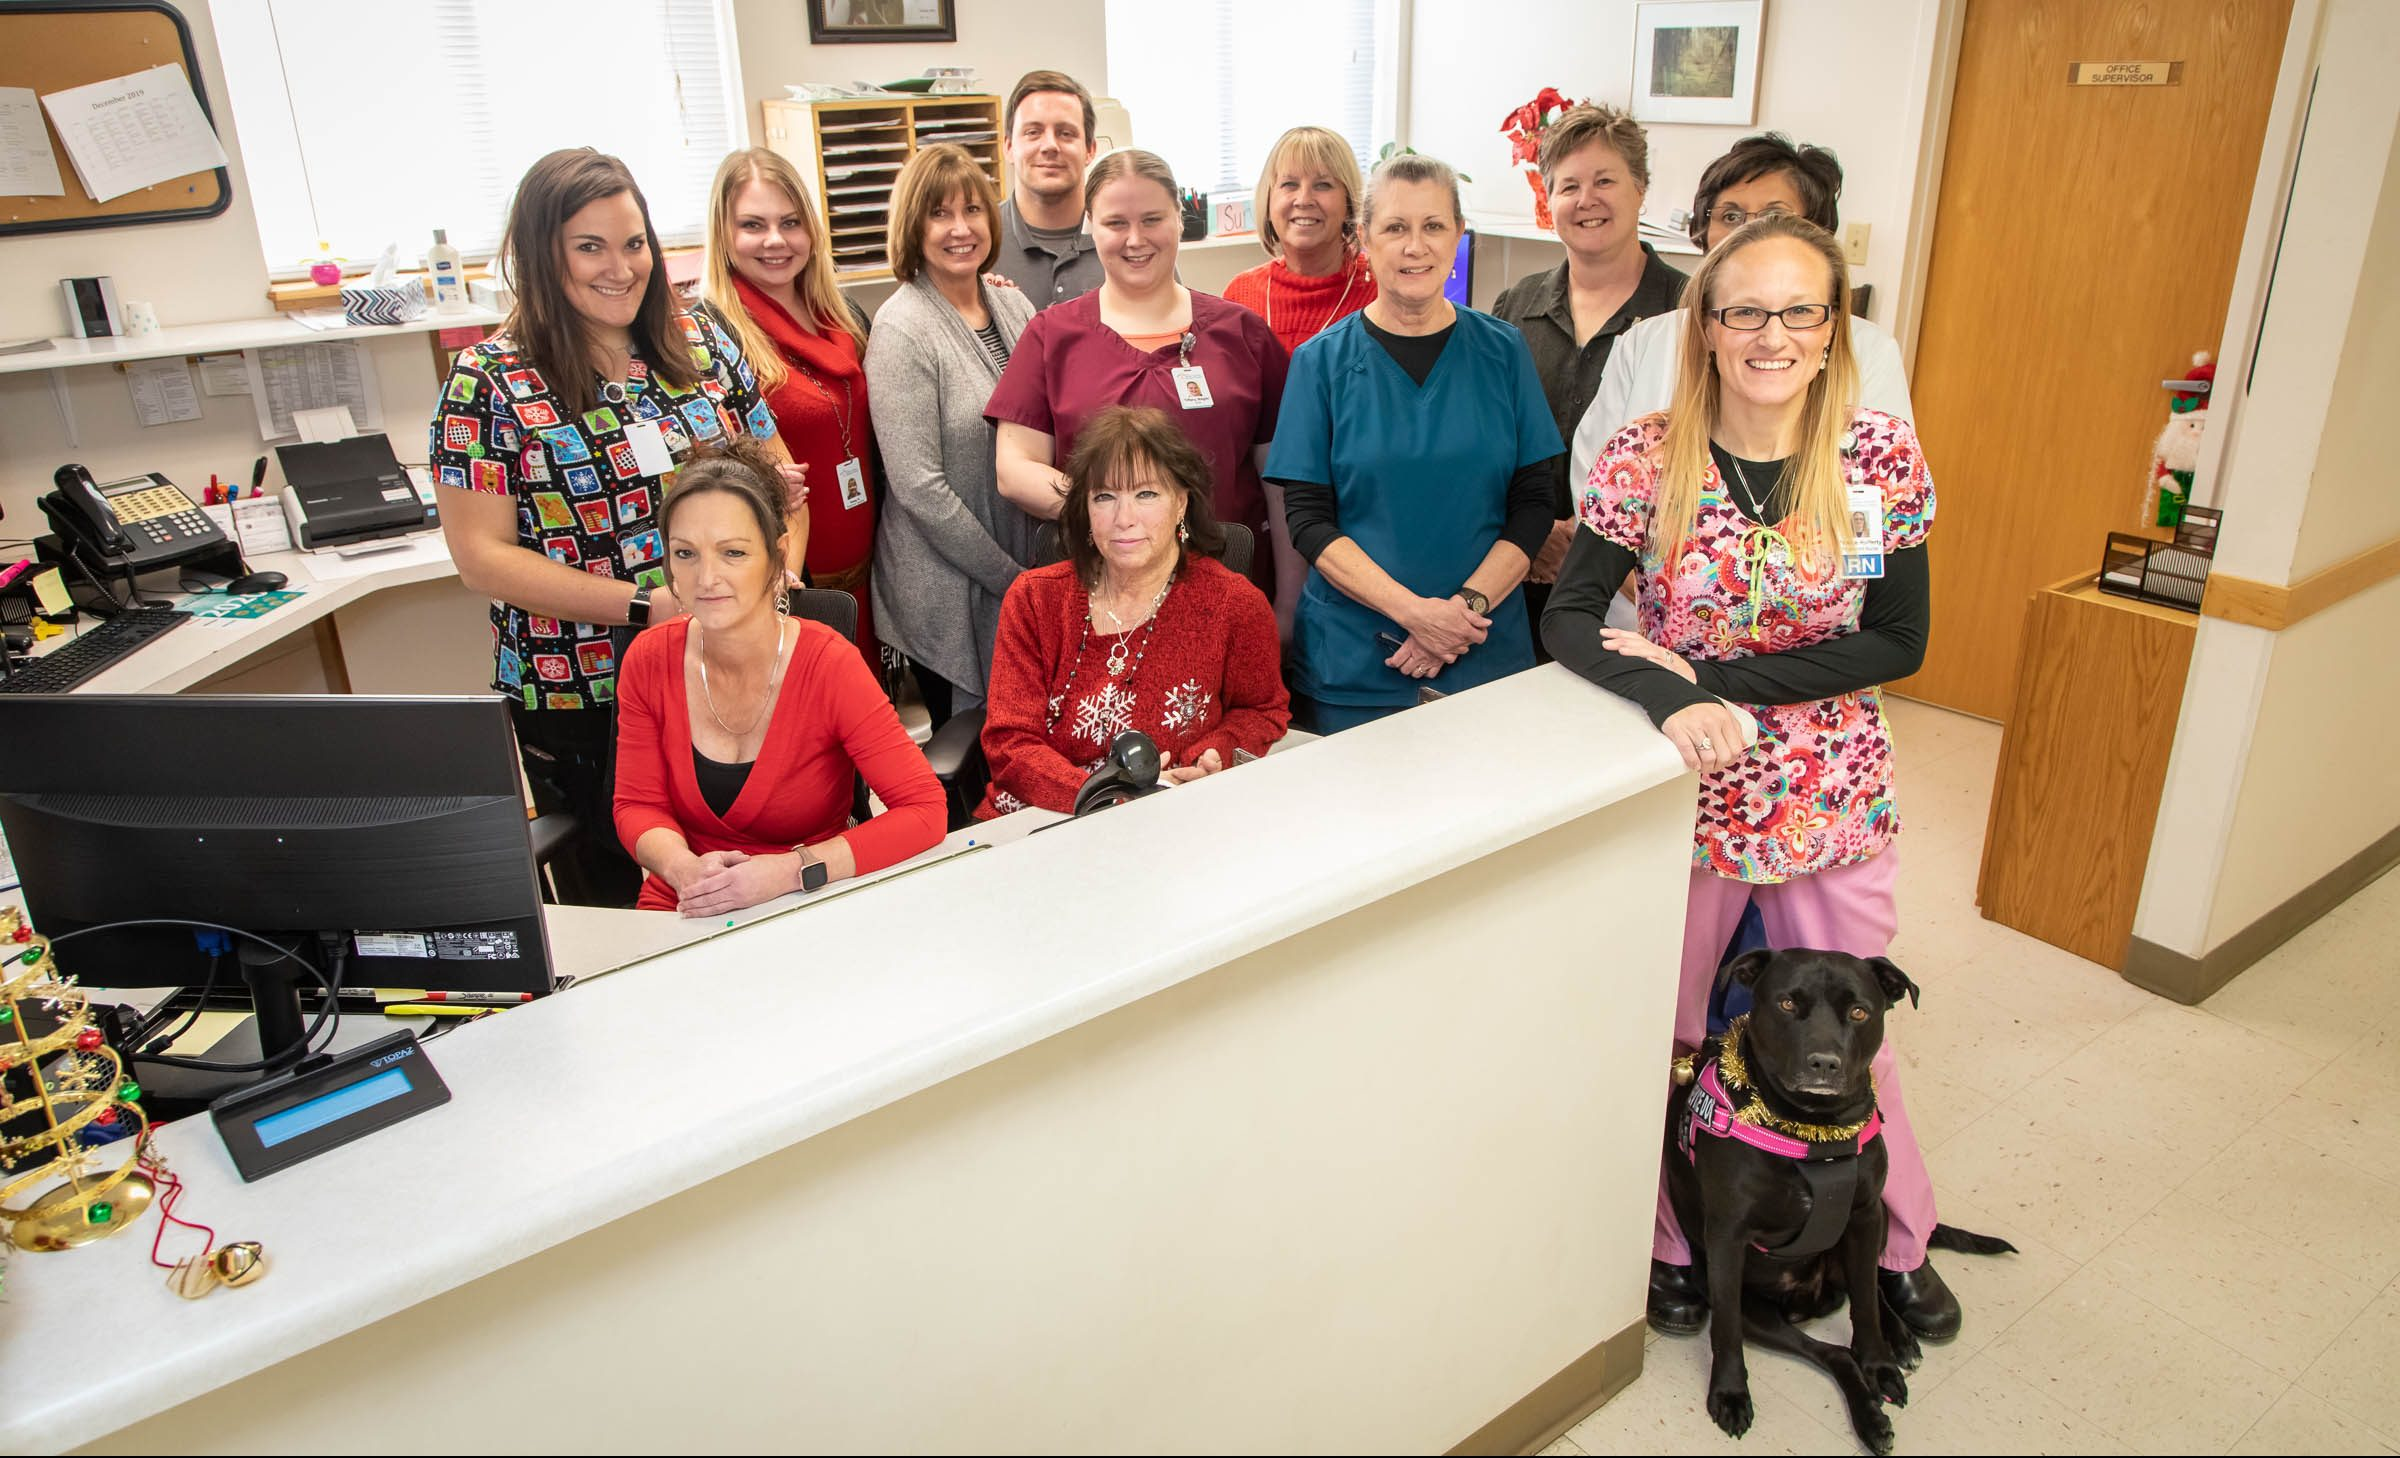 Staff photo of Custer County Clinic staff ©2019 Greg Smith; imediaSmith.com